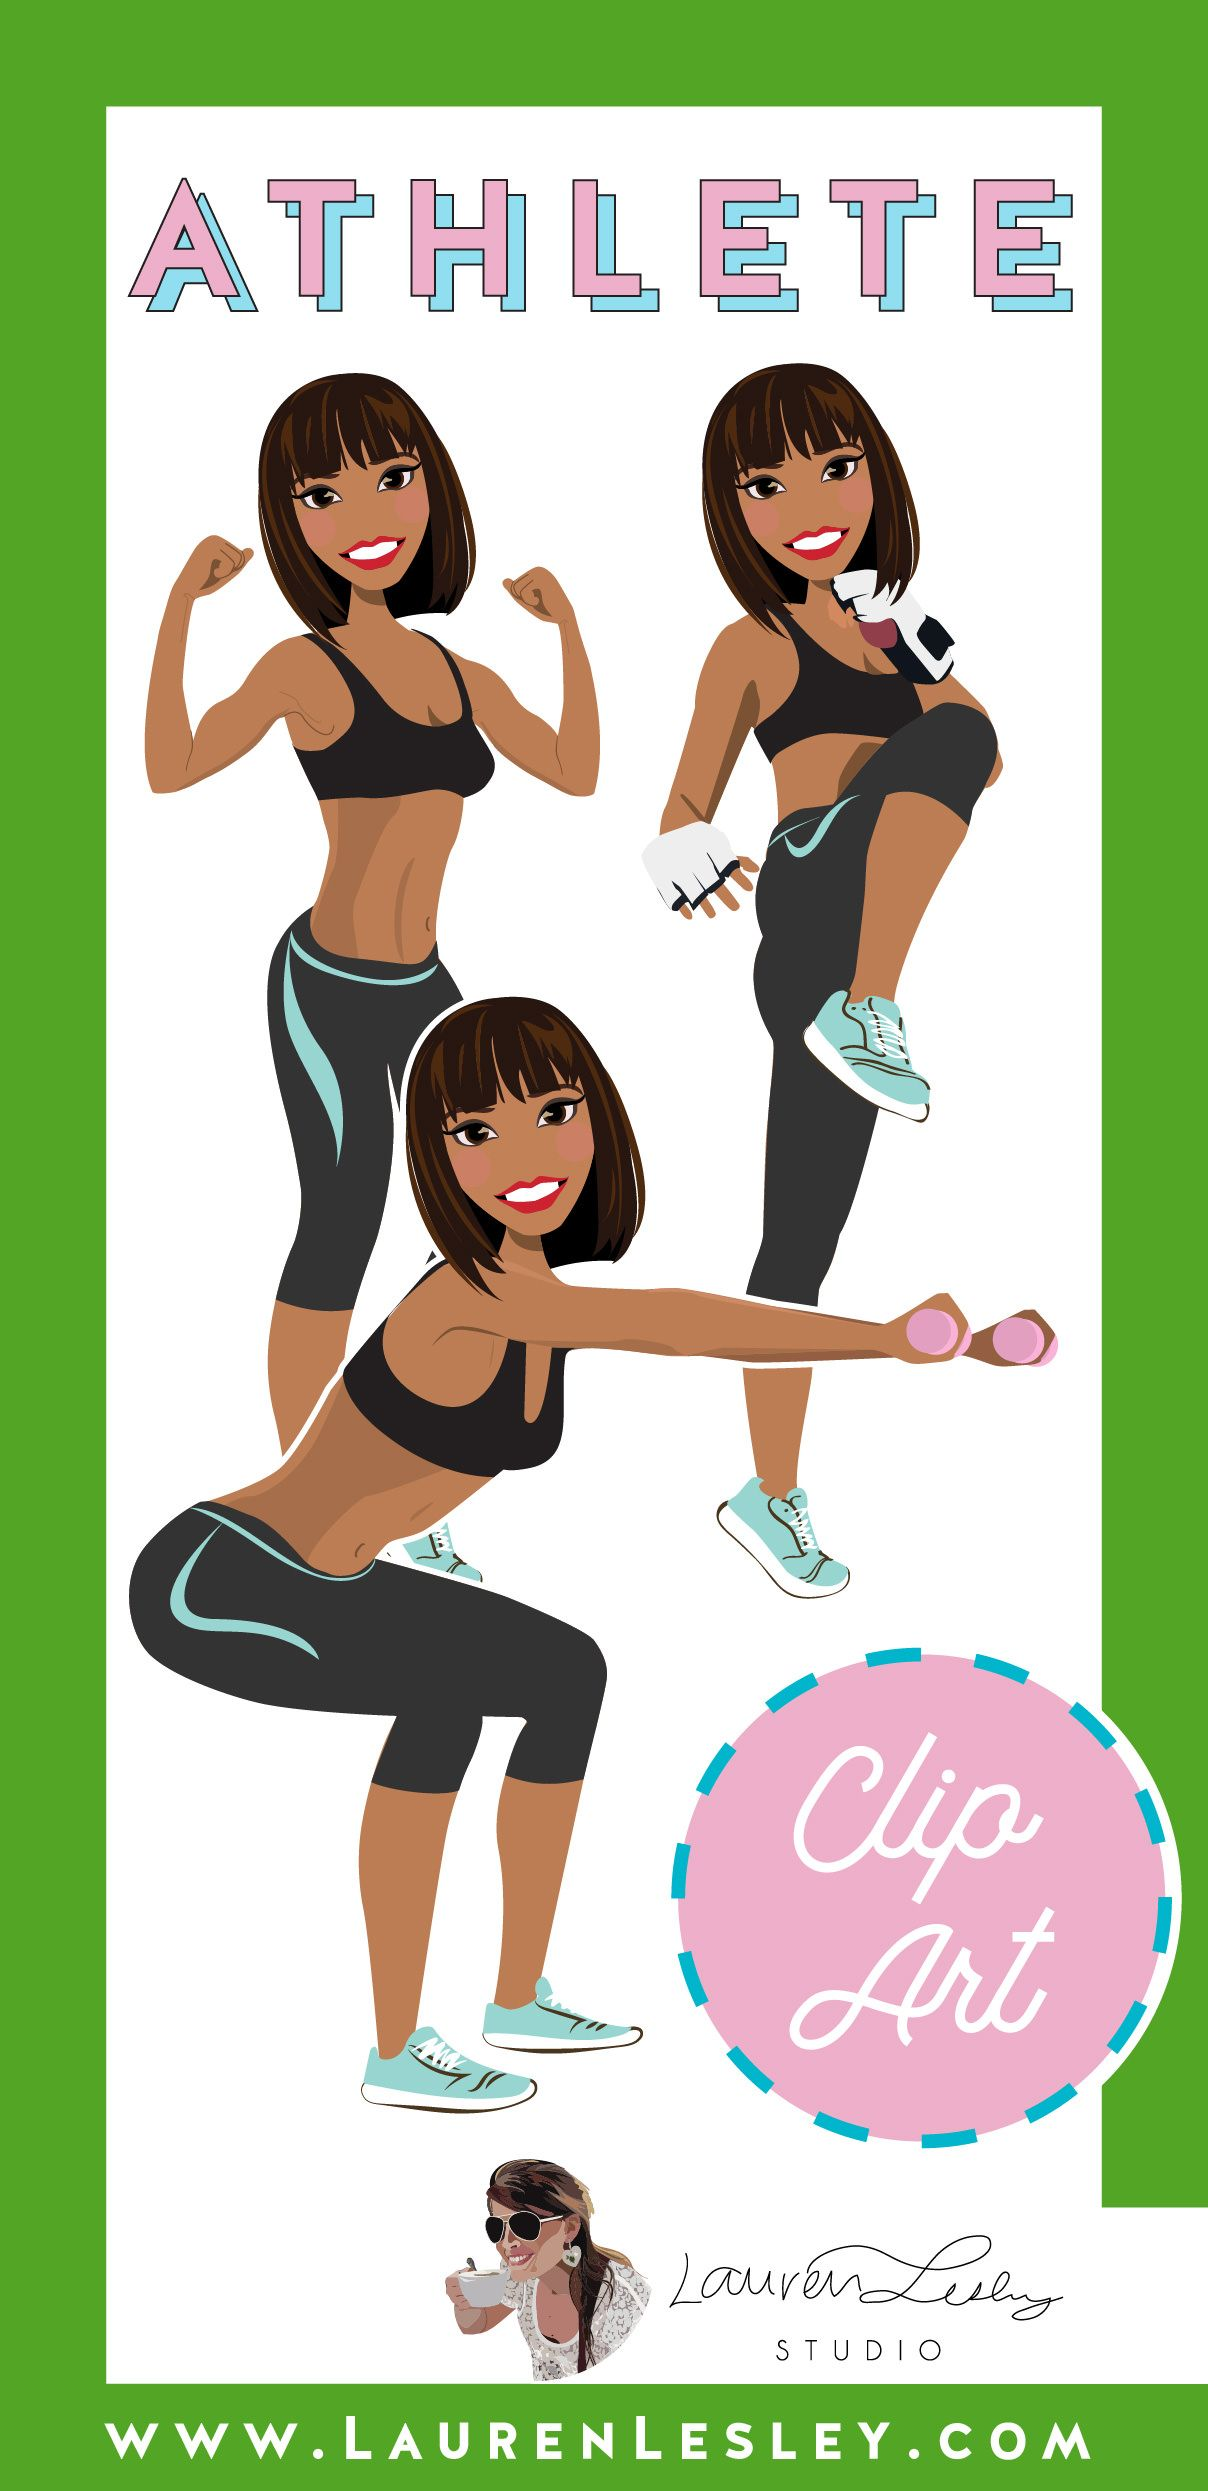 Athlete Clip Art Olivia Personal trainer business